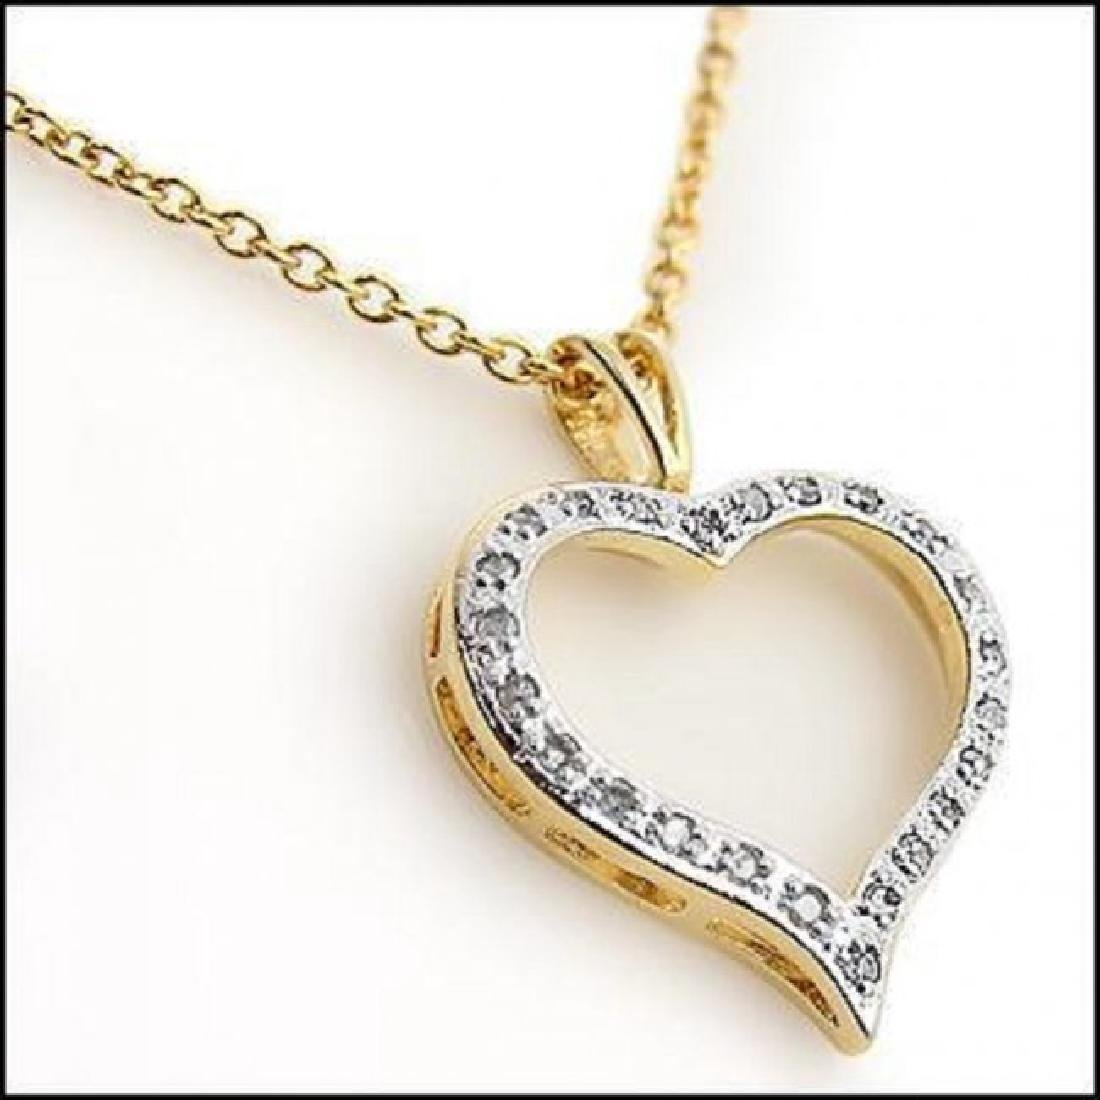 0.46 CT Diamond Heart Designer Necklace $775